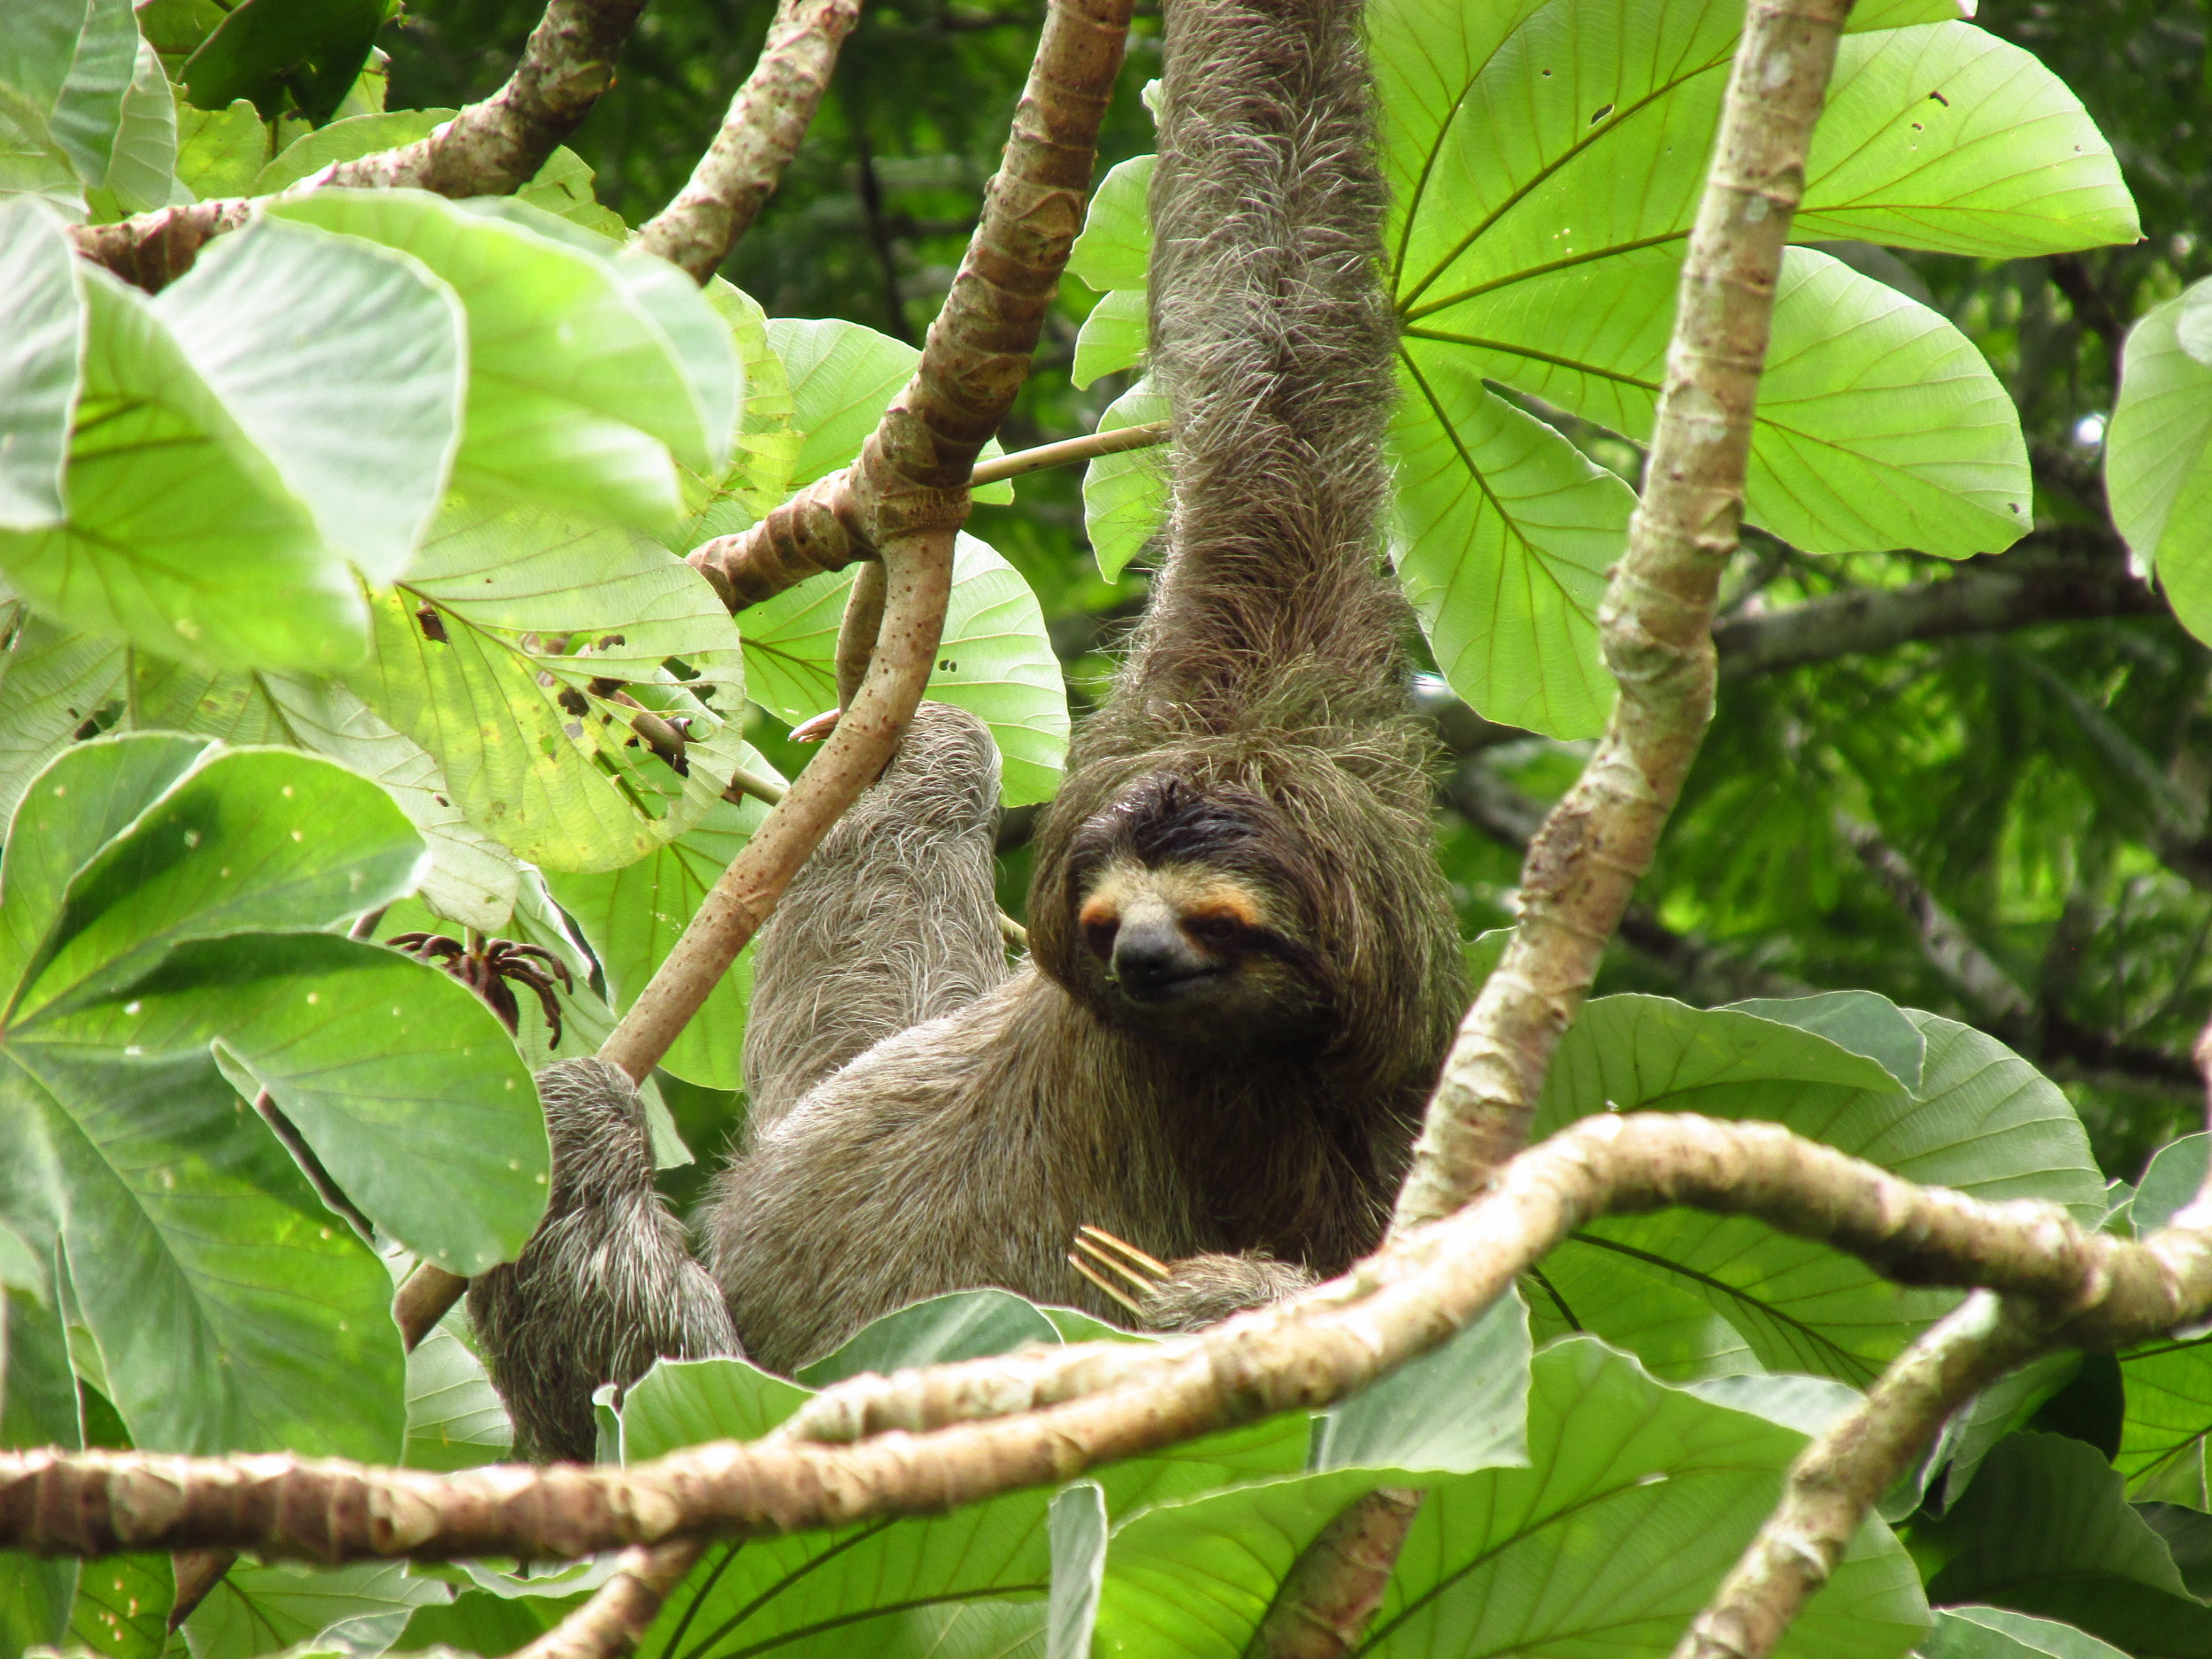 A three-toed sloth foraging leisurely in a Cecropia tree.